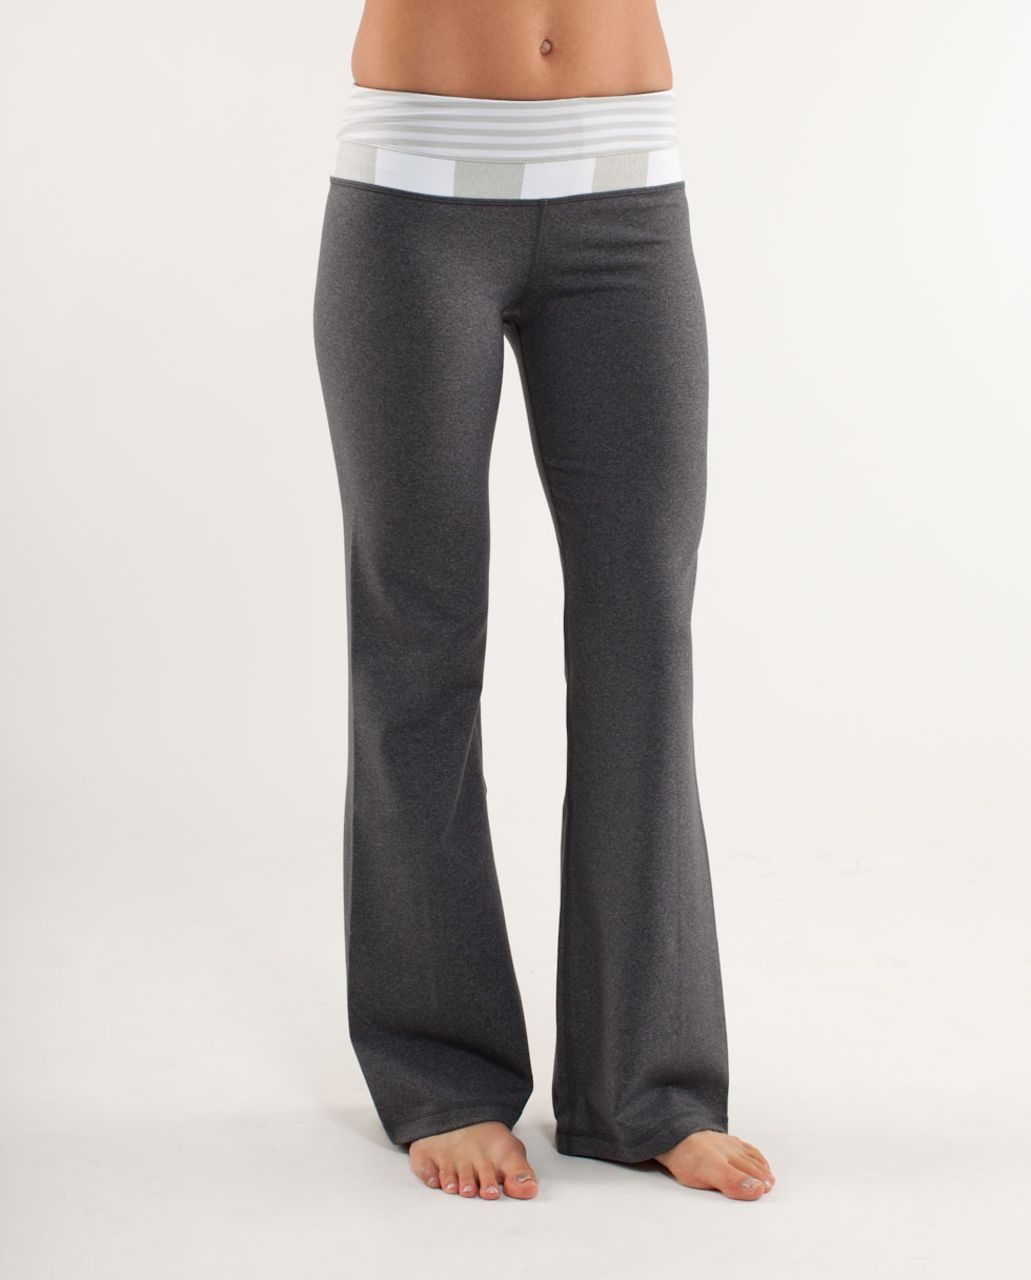 Lululemon Groove Pant (Regular) - Heathered Deep Coal /  Silver Spoon White Narrow Bold Multi Stripe /  White Silver Spooi